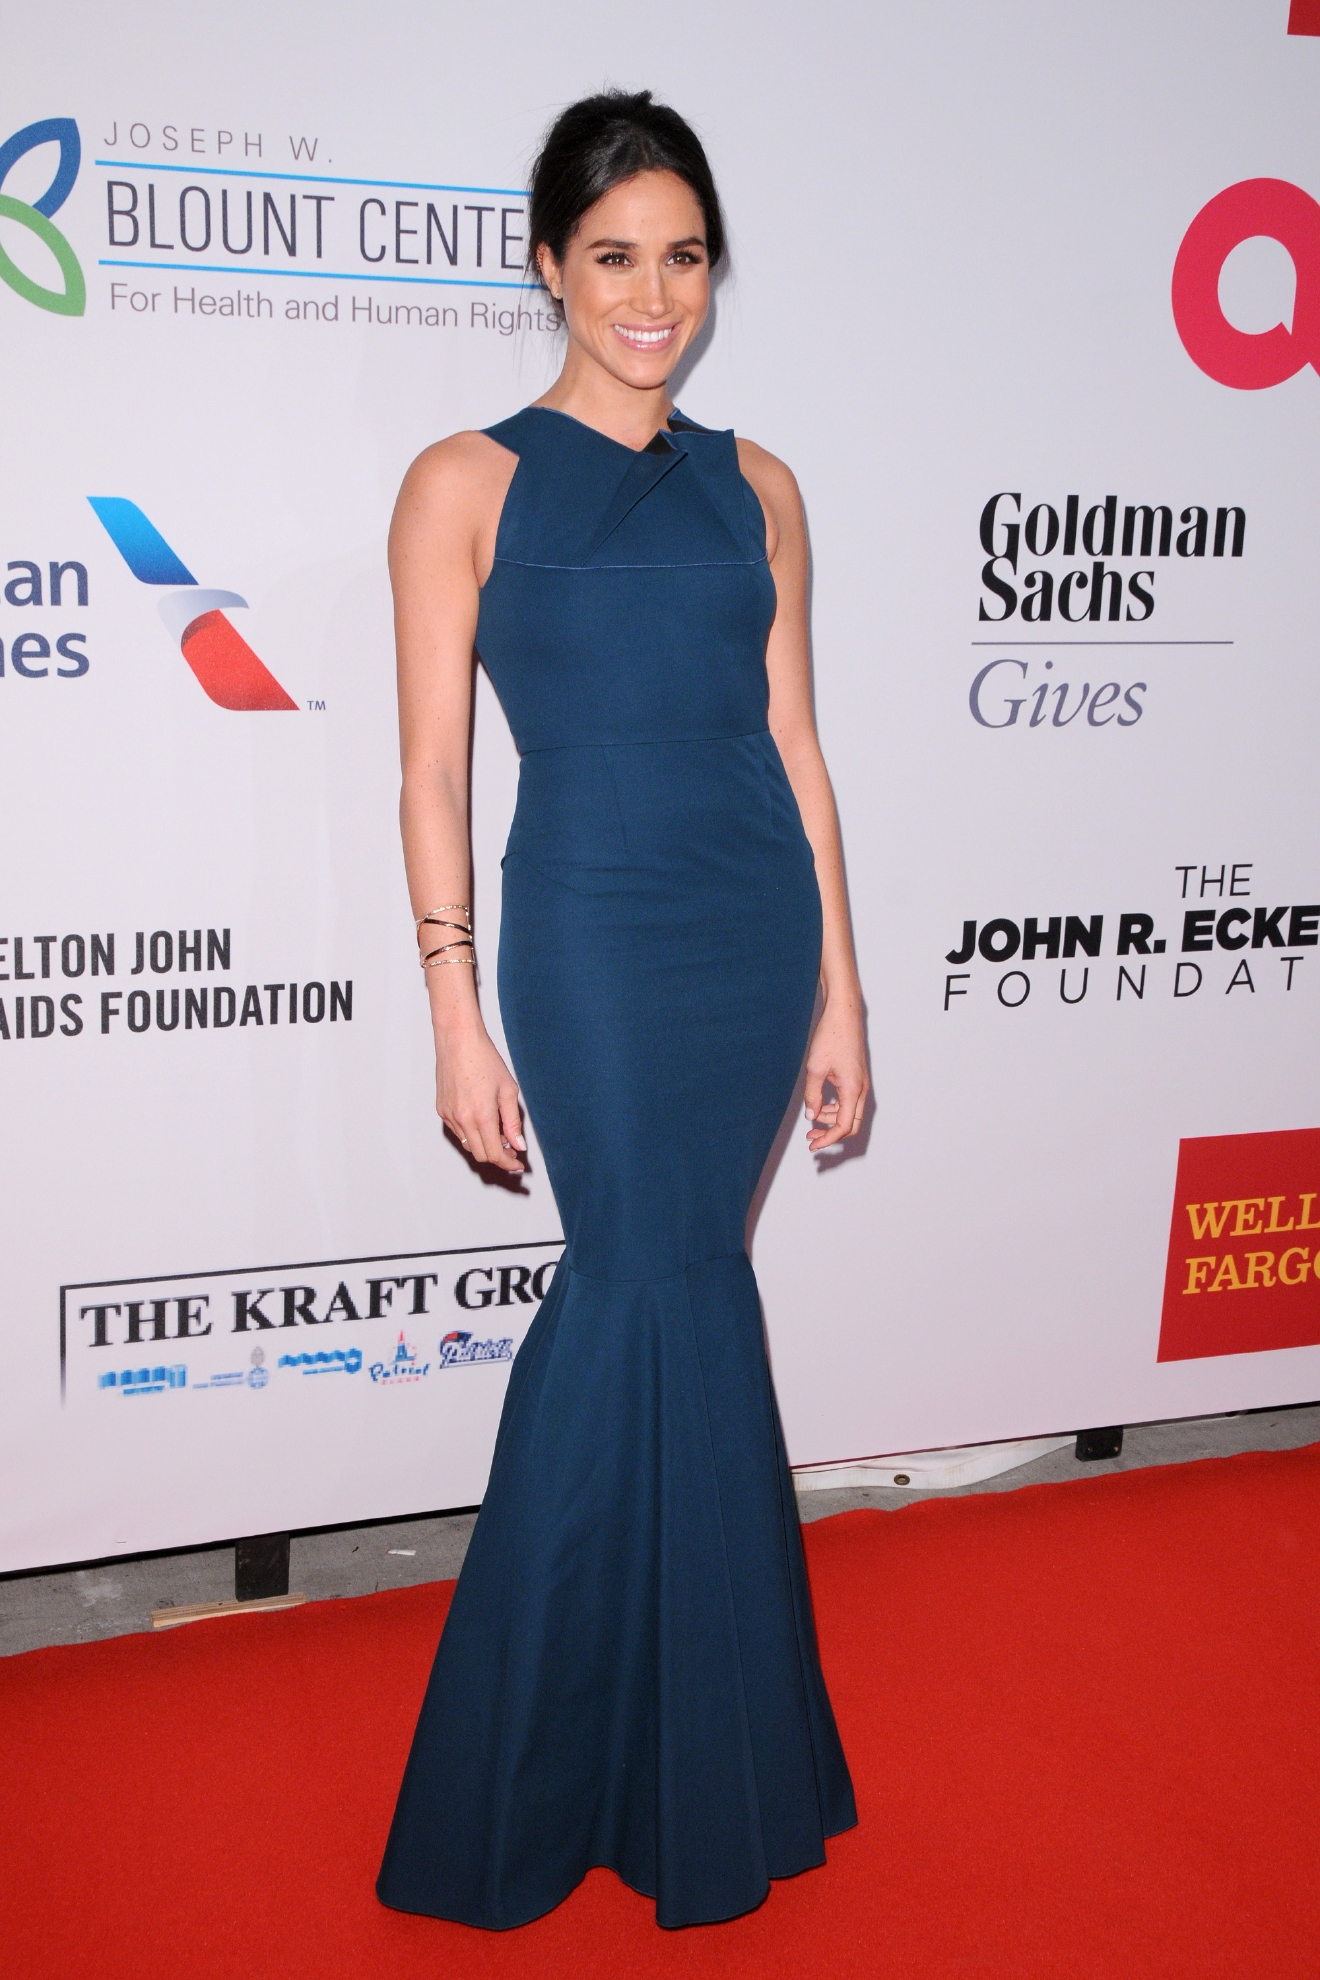 Elton John AIDS Foundation's 13th Annual An Enduring Vision Benefit - Red Carpet Arrivals  Featuring: Meghan Markle Where: New York City, New York, United States When: 29 Oct 2014 Credit: Ivan Nikolov/WENN.com